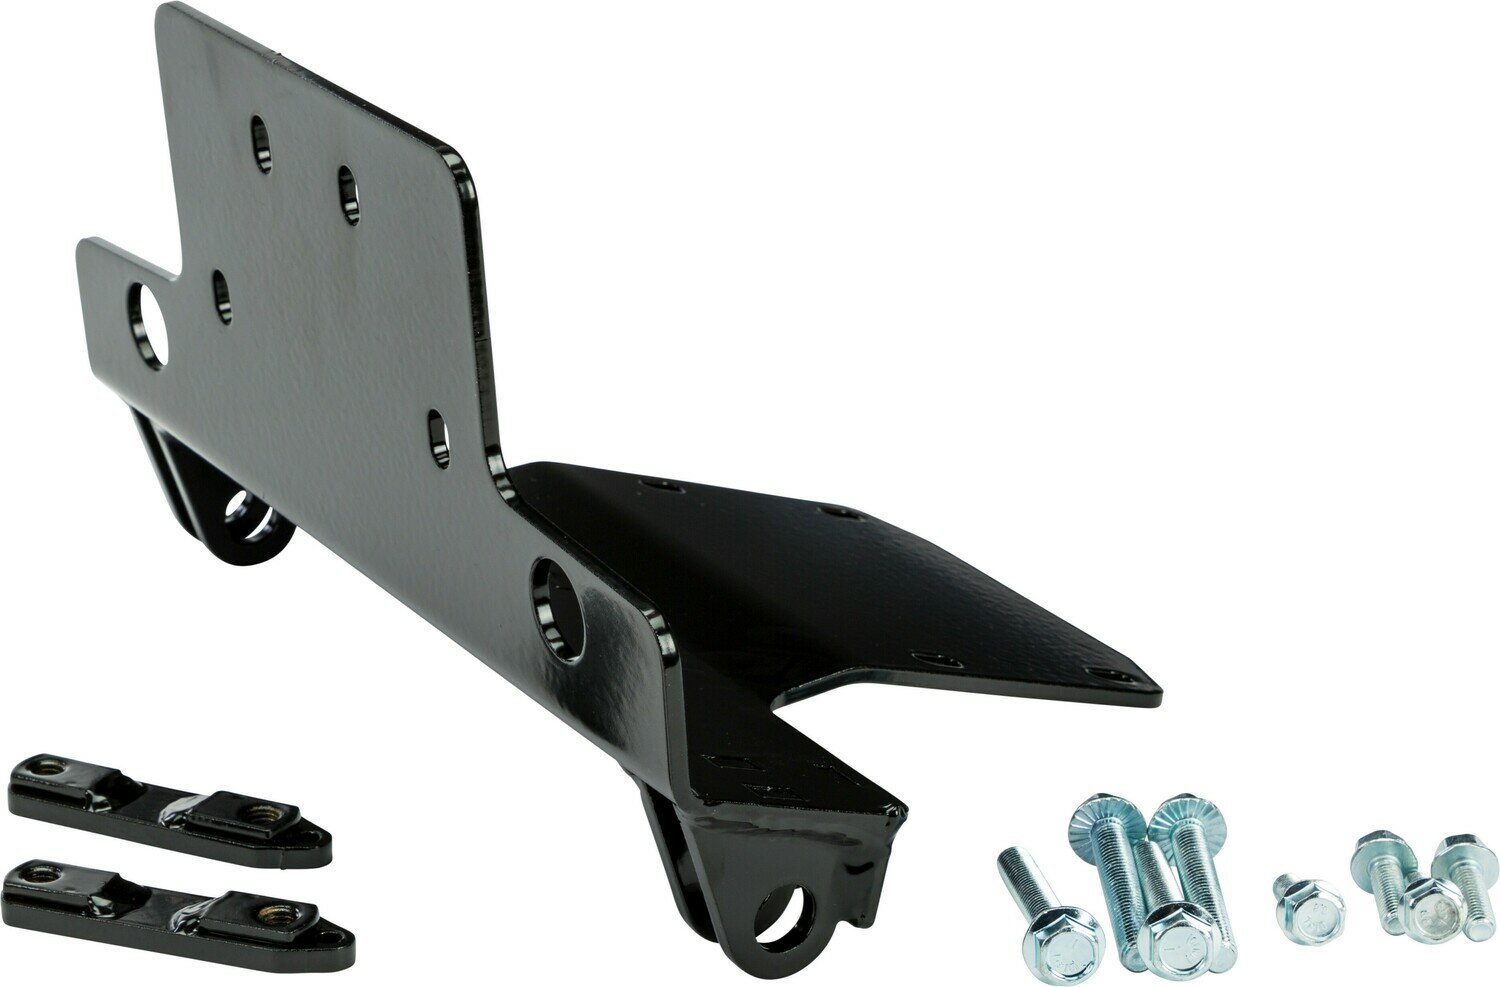 CFMOTO UFORCE 1000 UTV Snow Plow Mount, Open Trail KFI (106050, 10-6050)